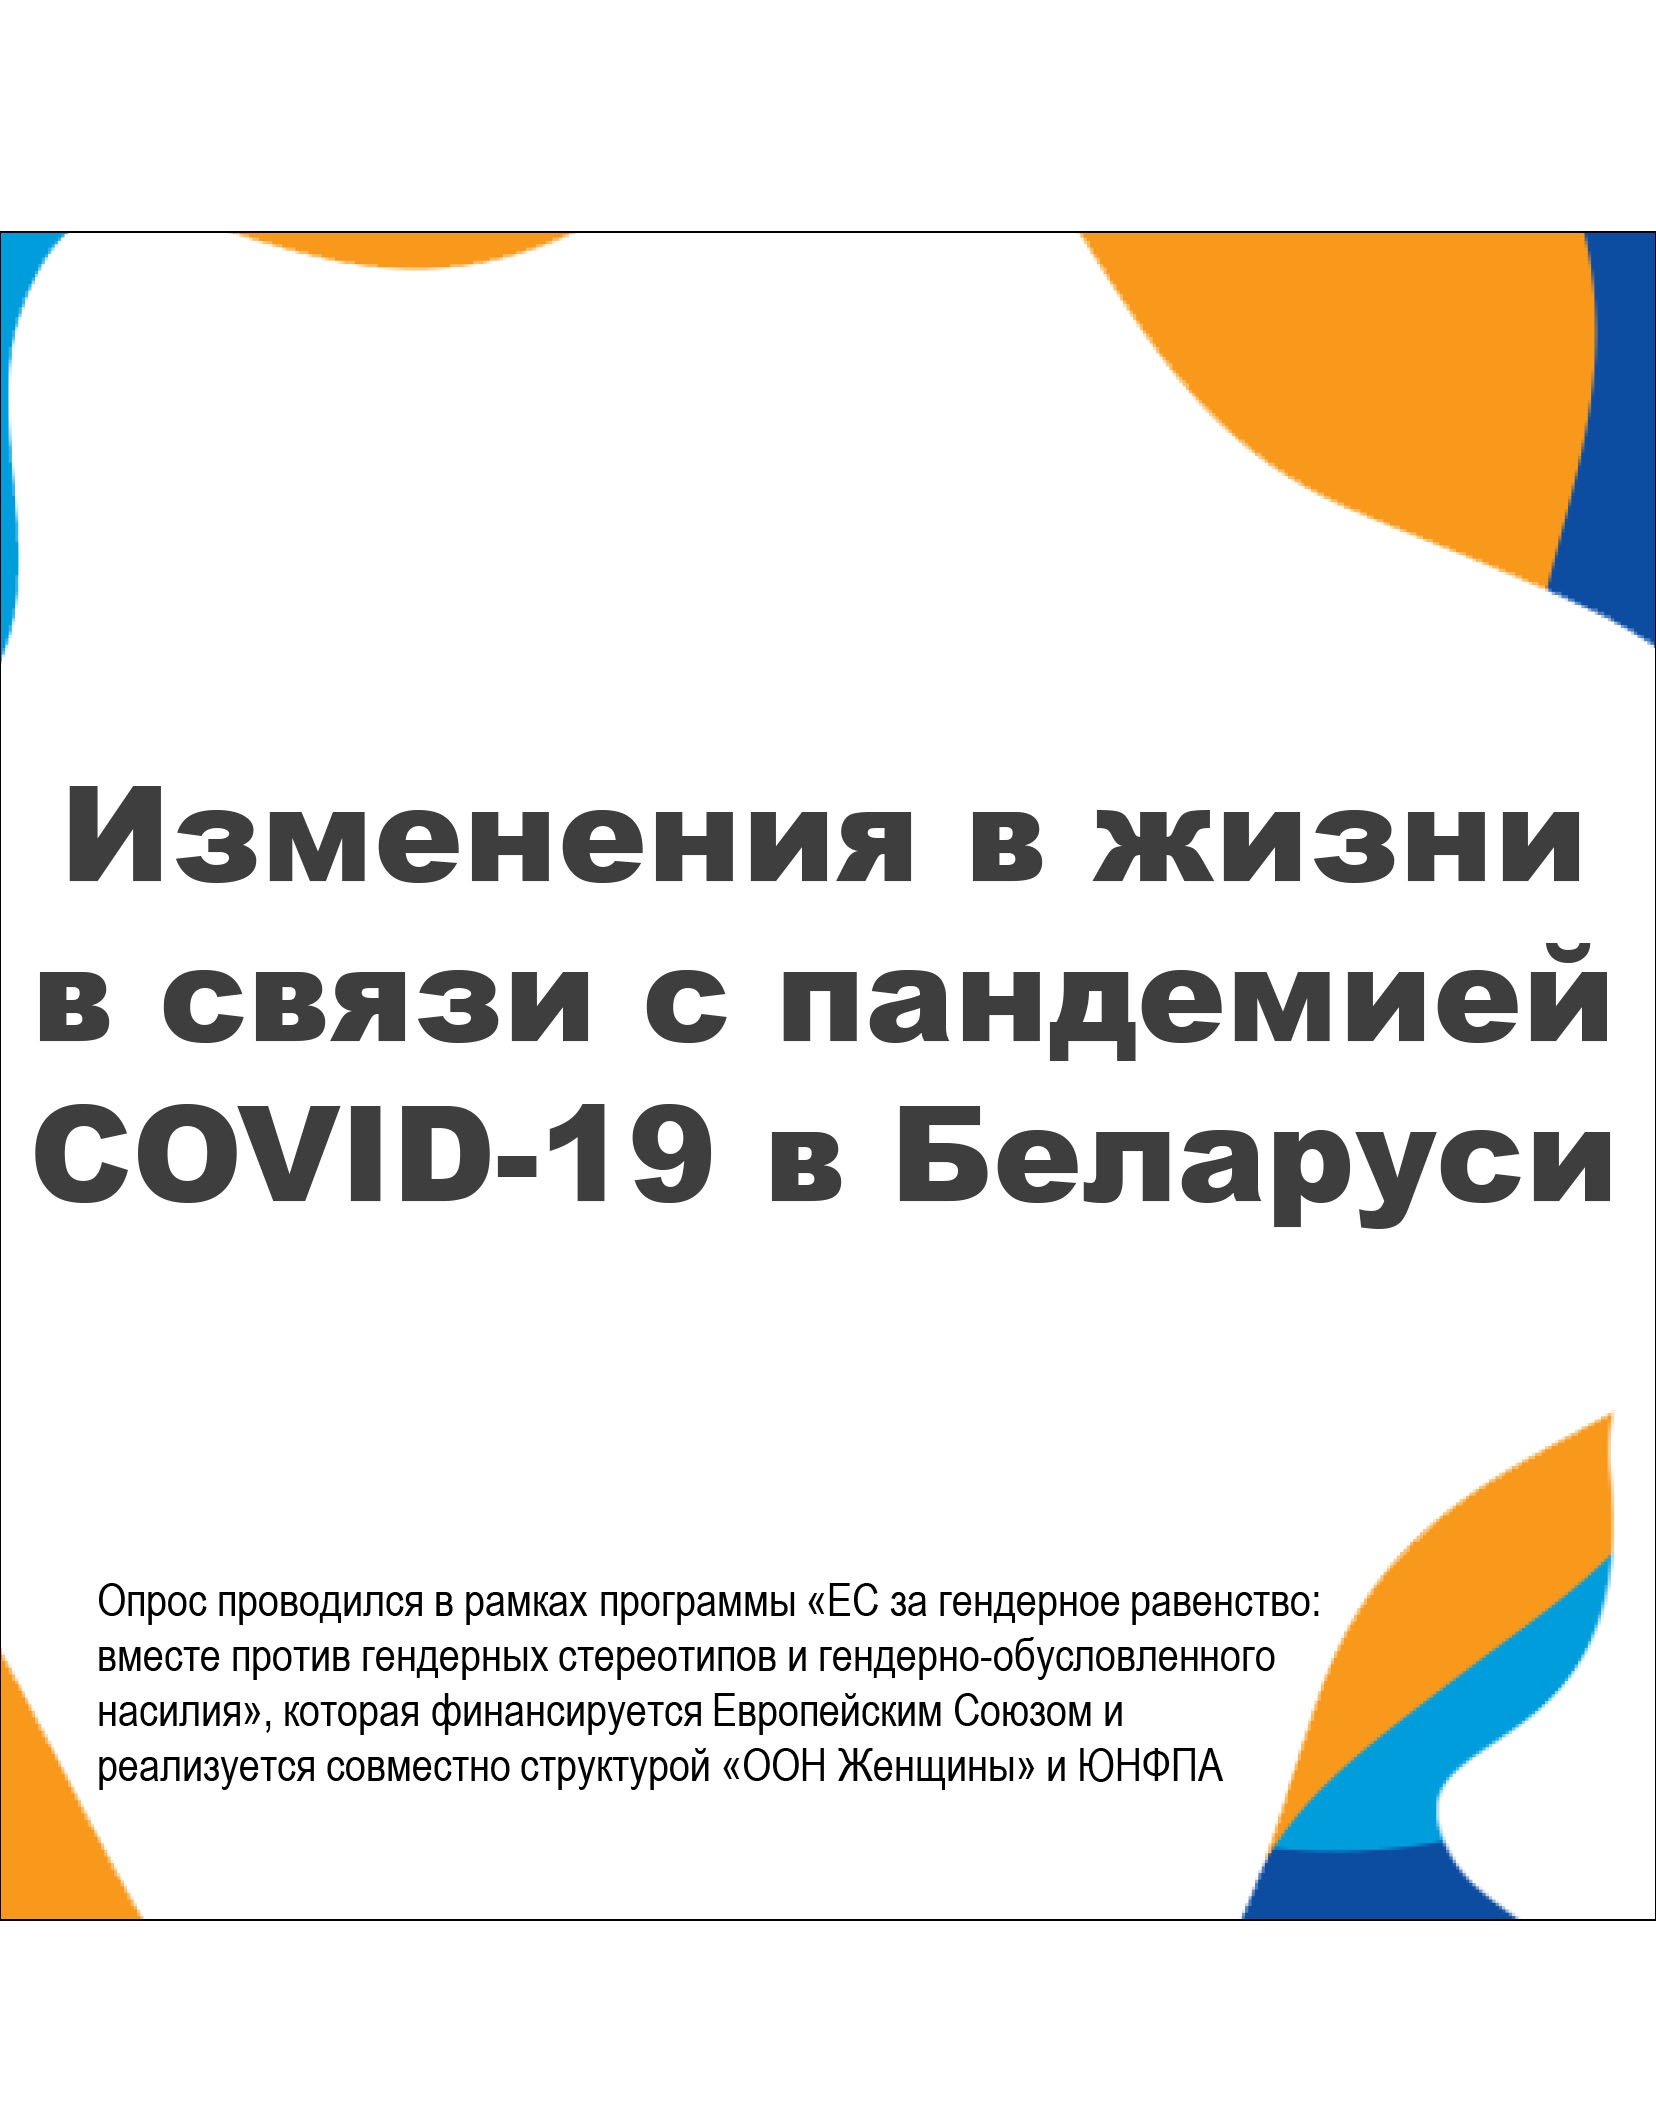 """Survey """"Changes in life in connection with the COVID-19 pandemic in Belarus"""""""